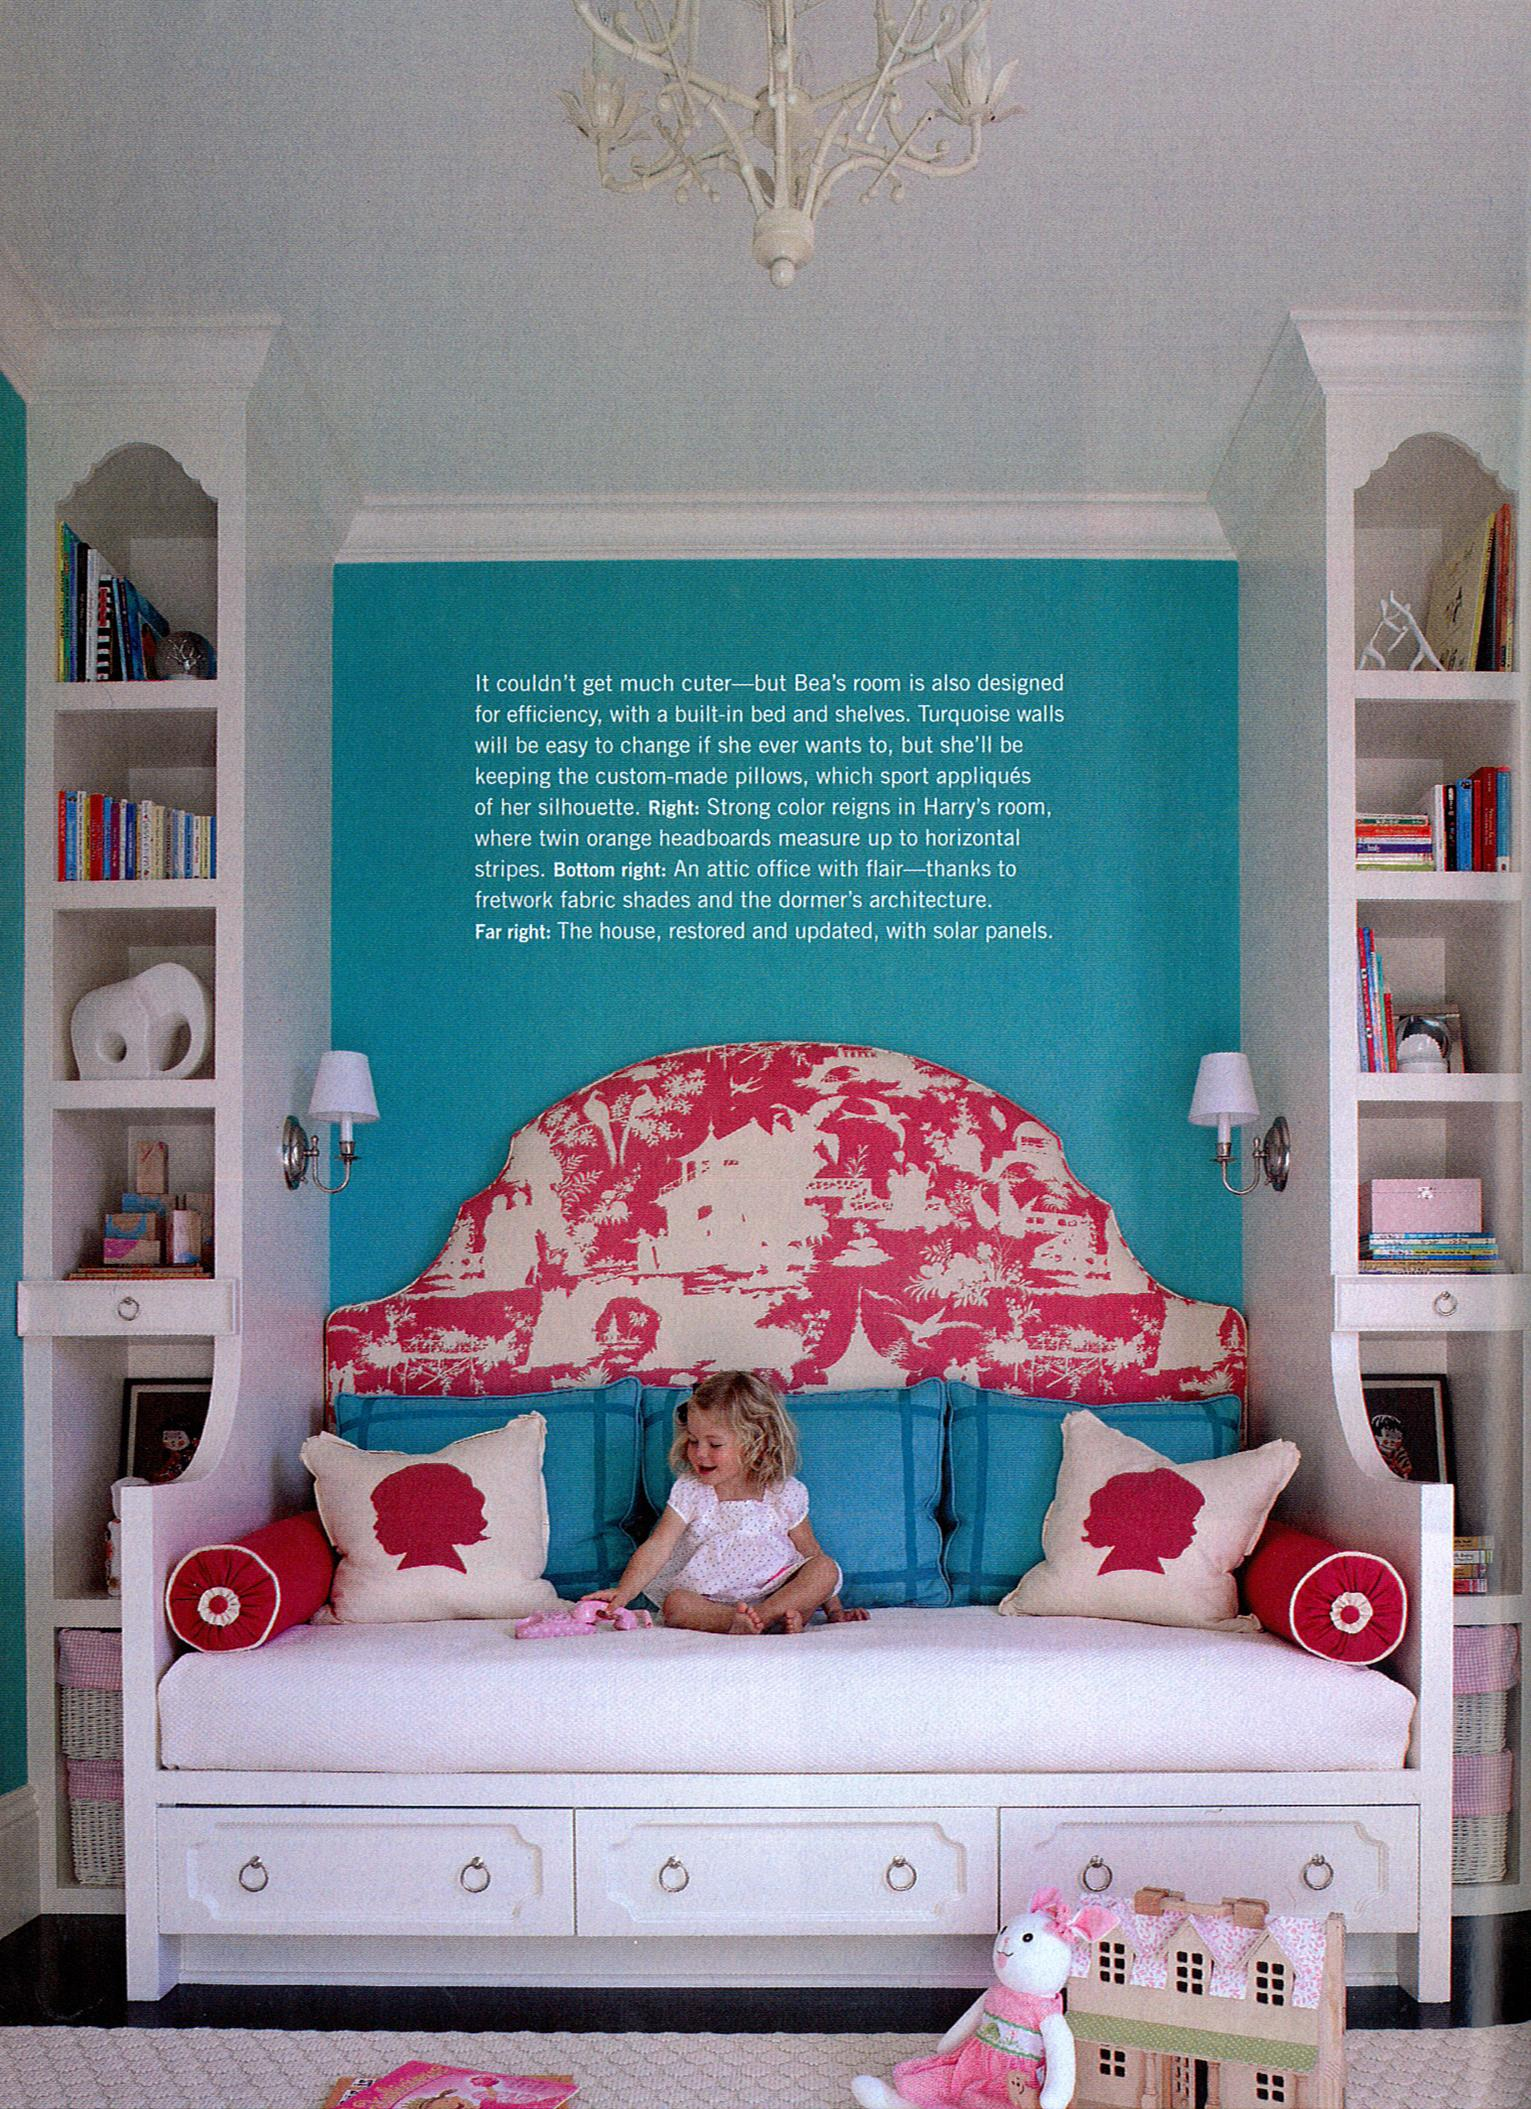 Bedrooms Just for Boys  Better Homes amp Gardens